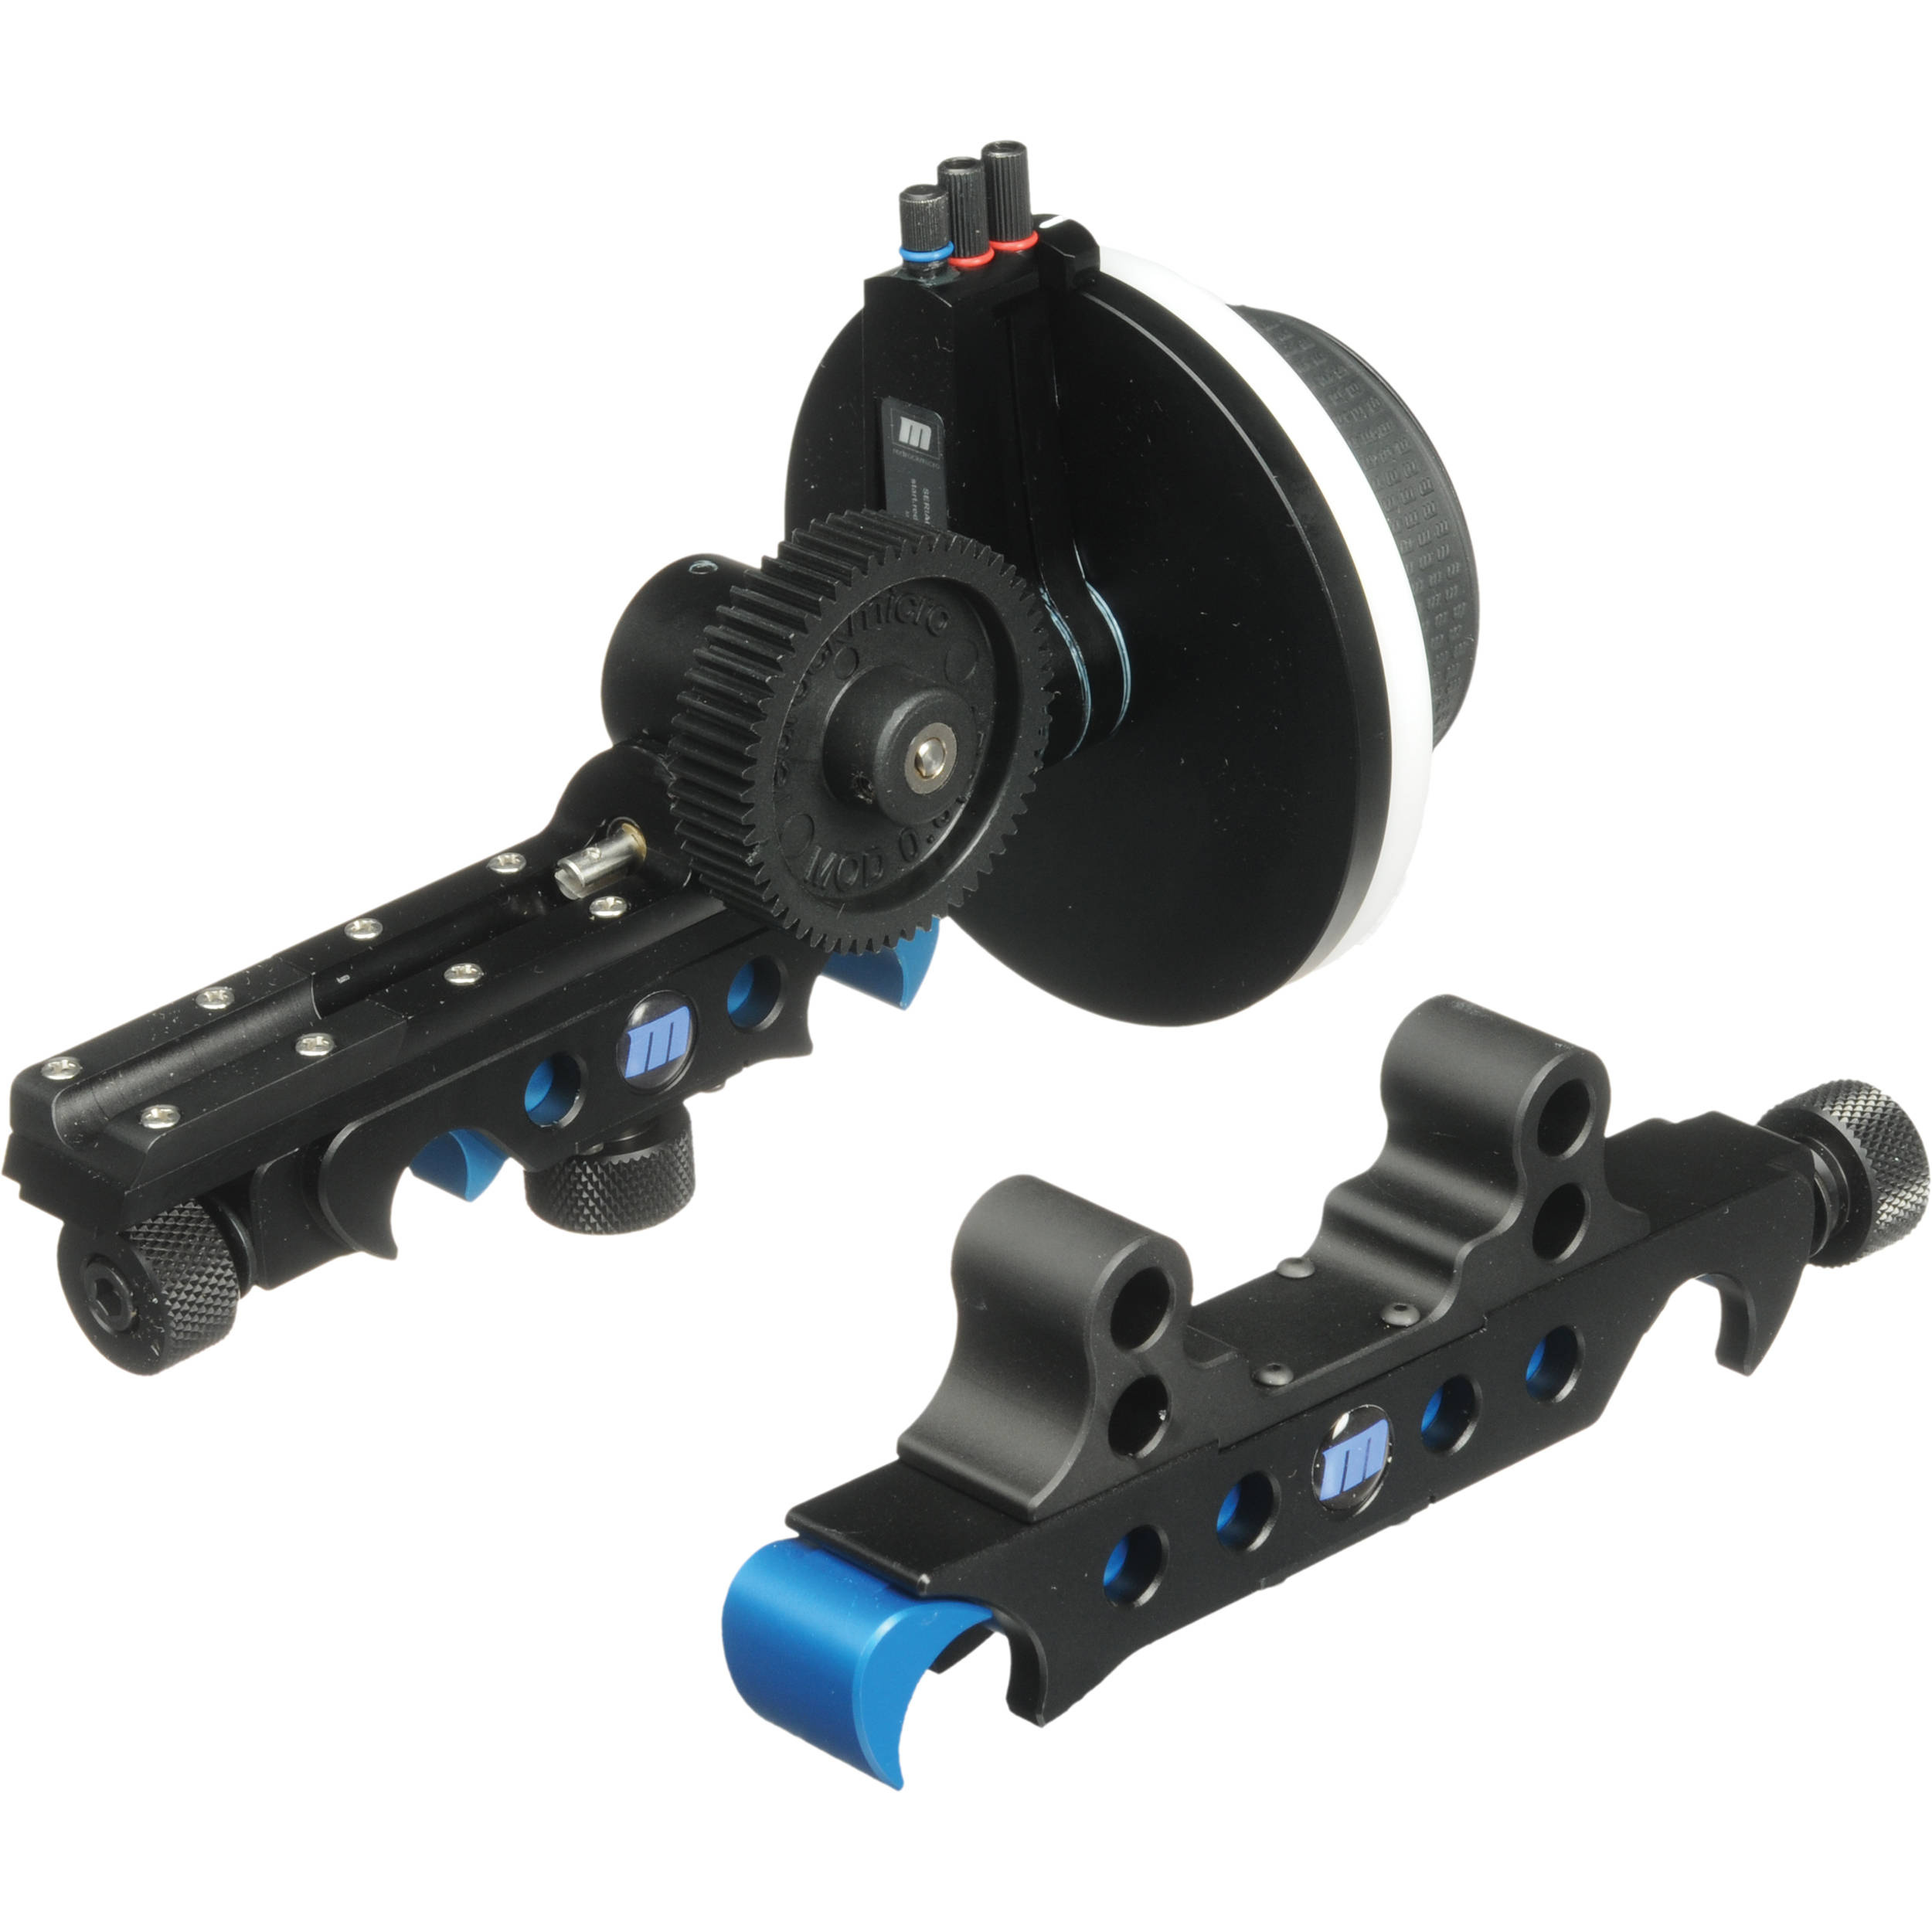 Redrock Micro MicroFollowFocus - Black 19mm Bundle